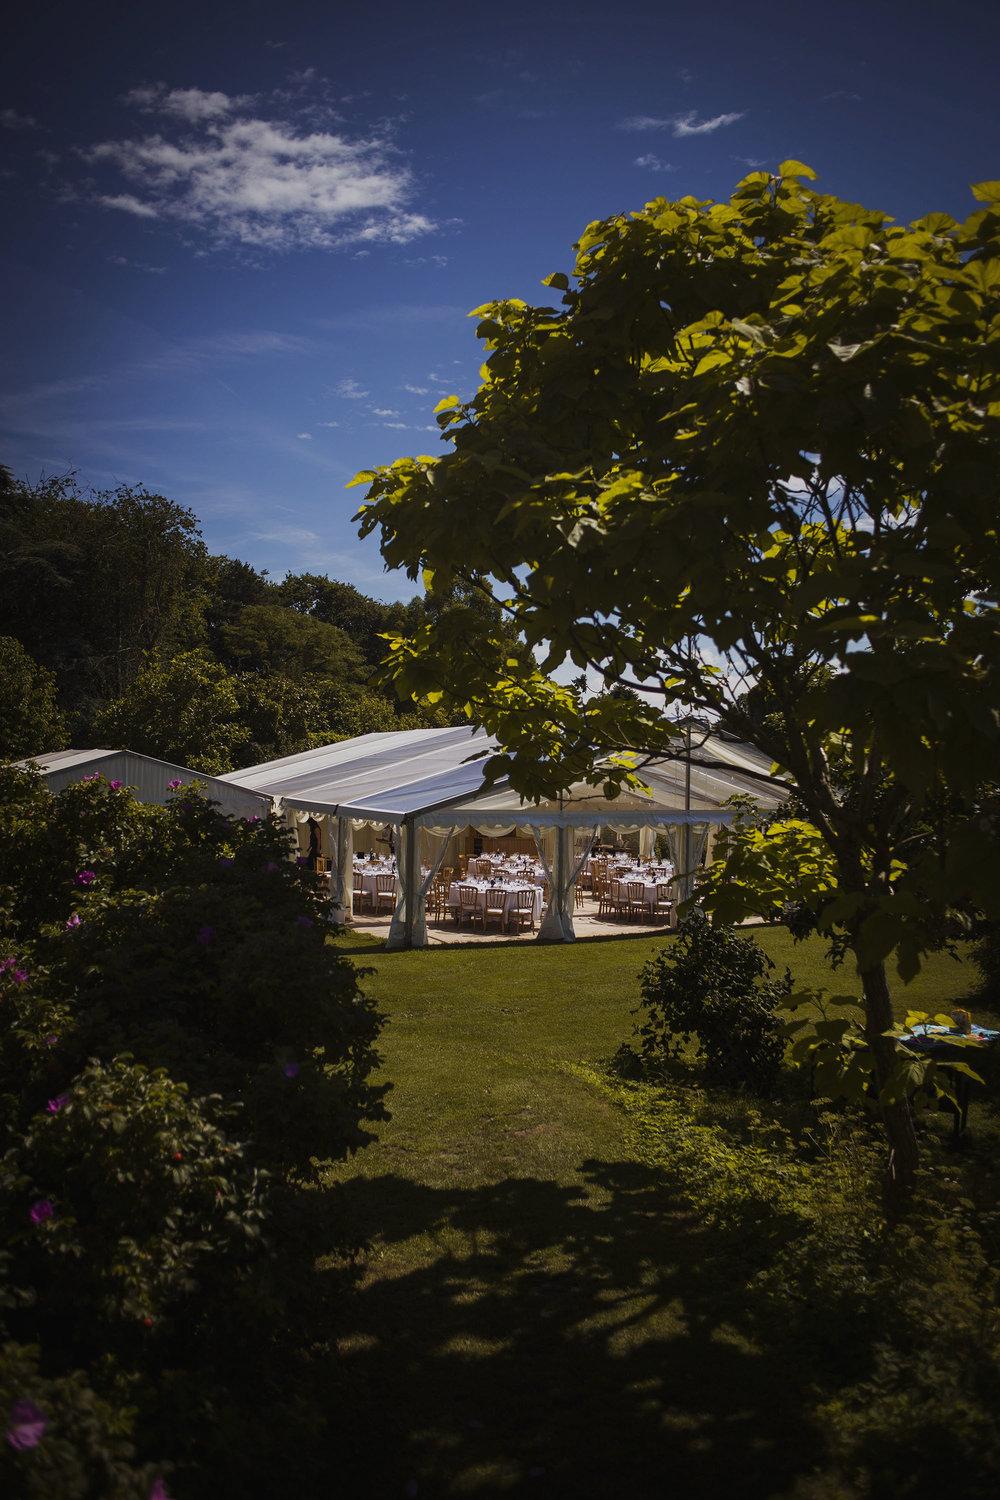 county marquee at usk castle wedding venue in south wales